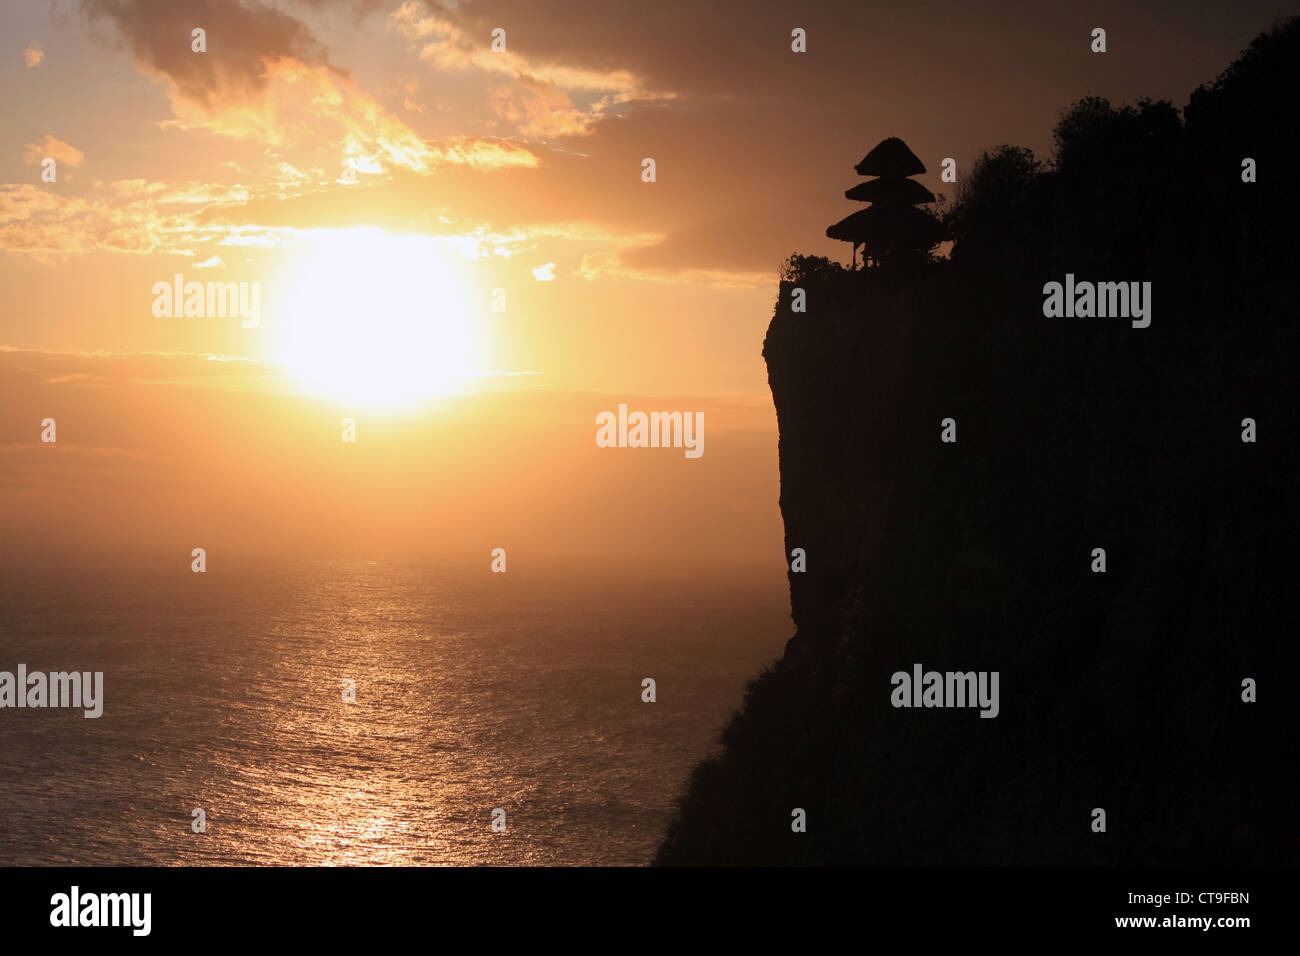 Uluwatu Temple (Pura Luhur Uluwatu) on the south western tip of Bali at sunset. - Stock Image